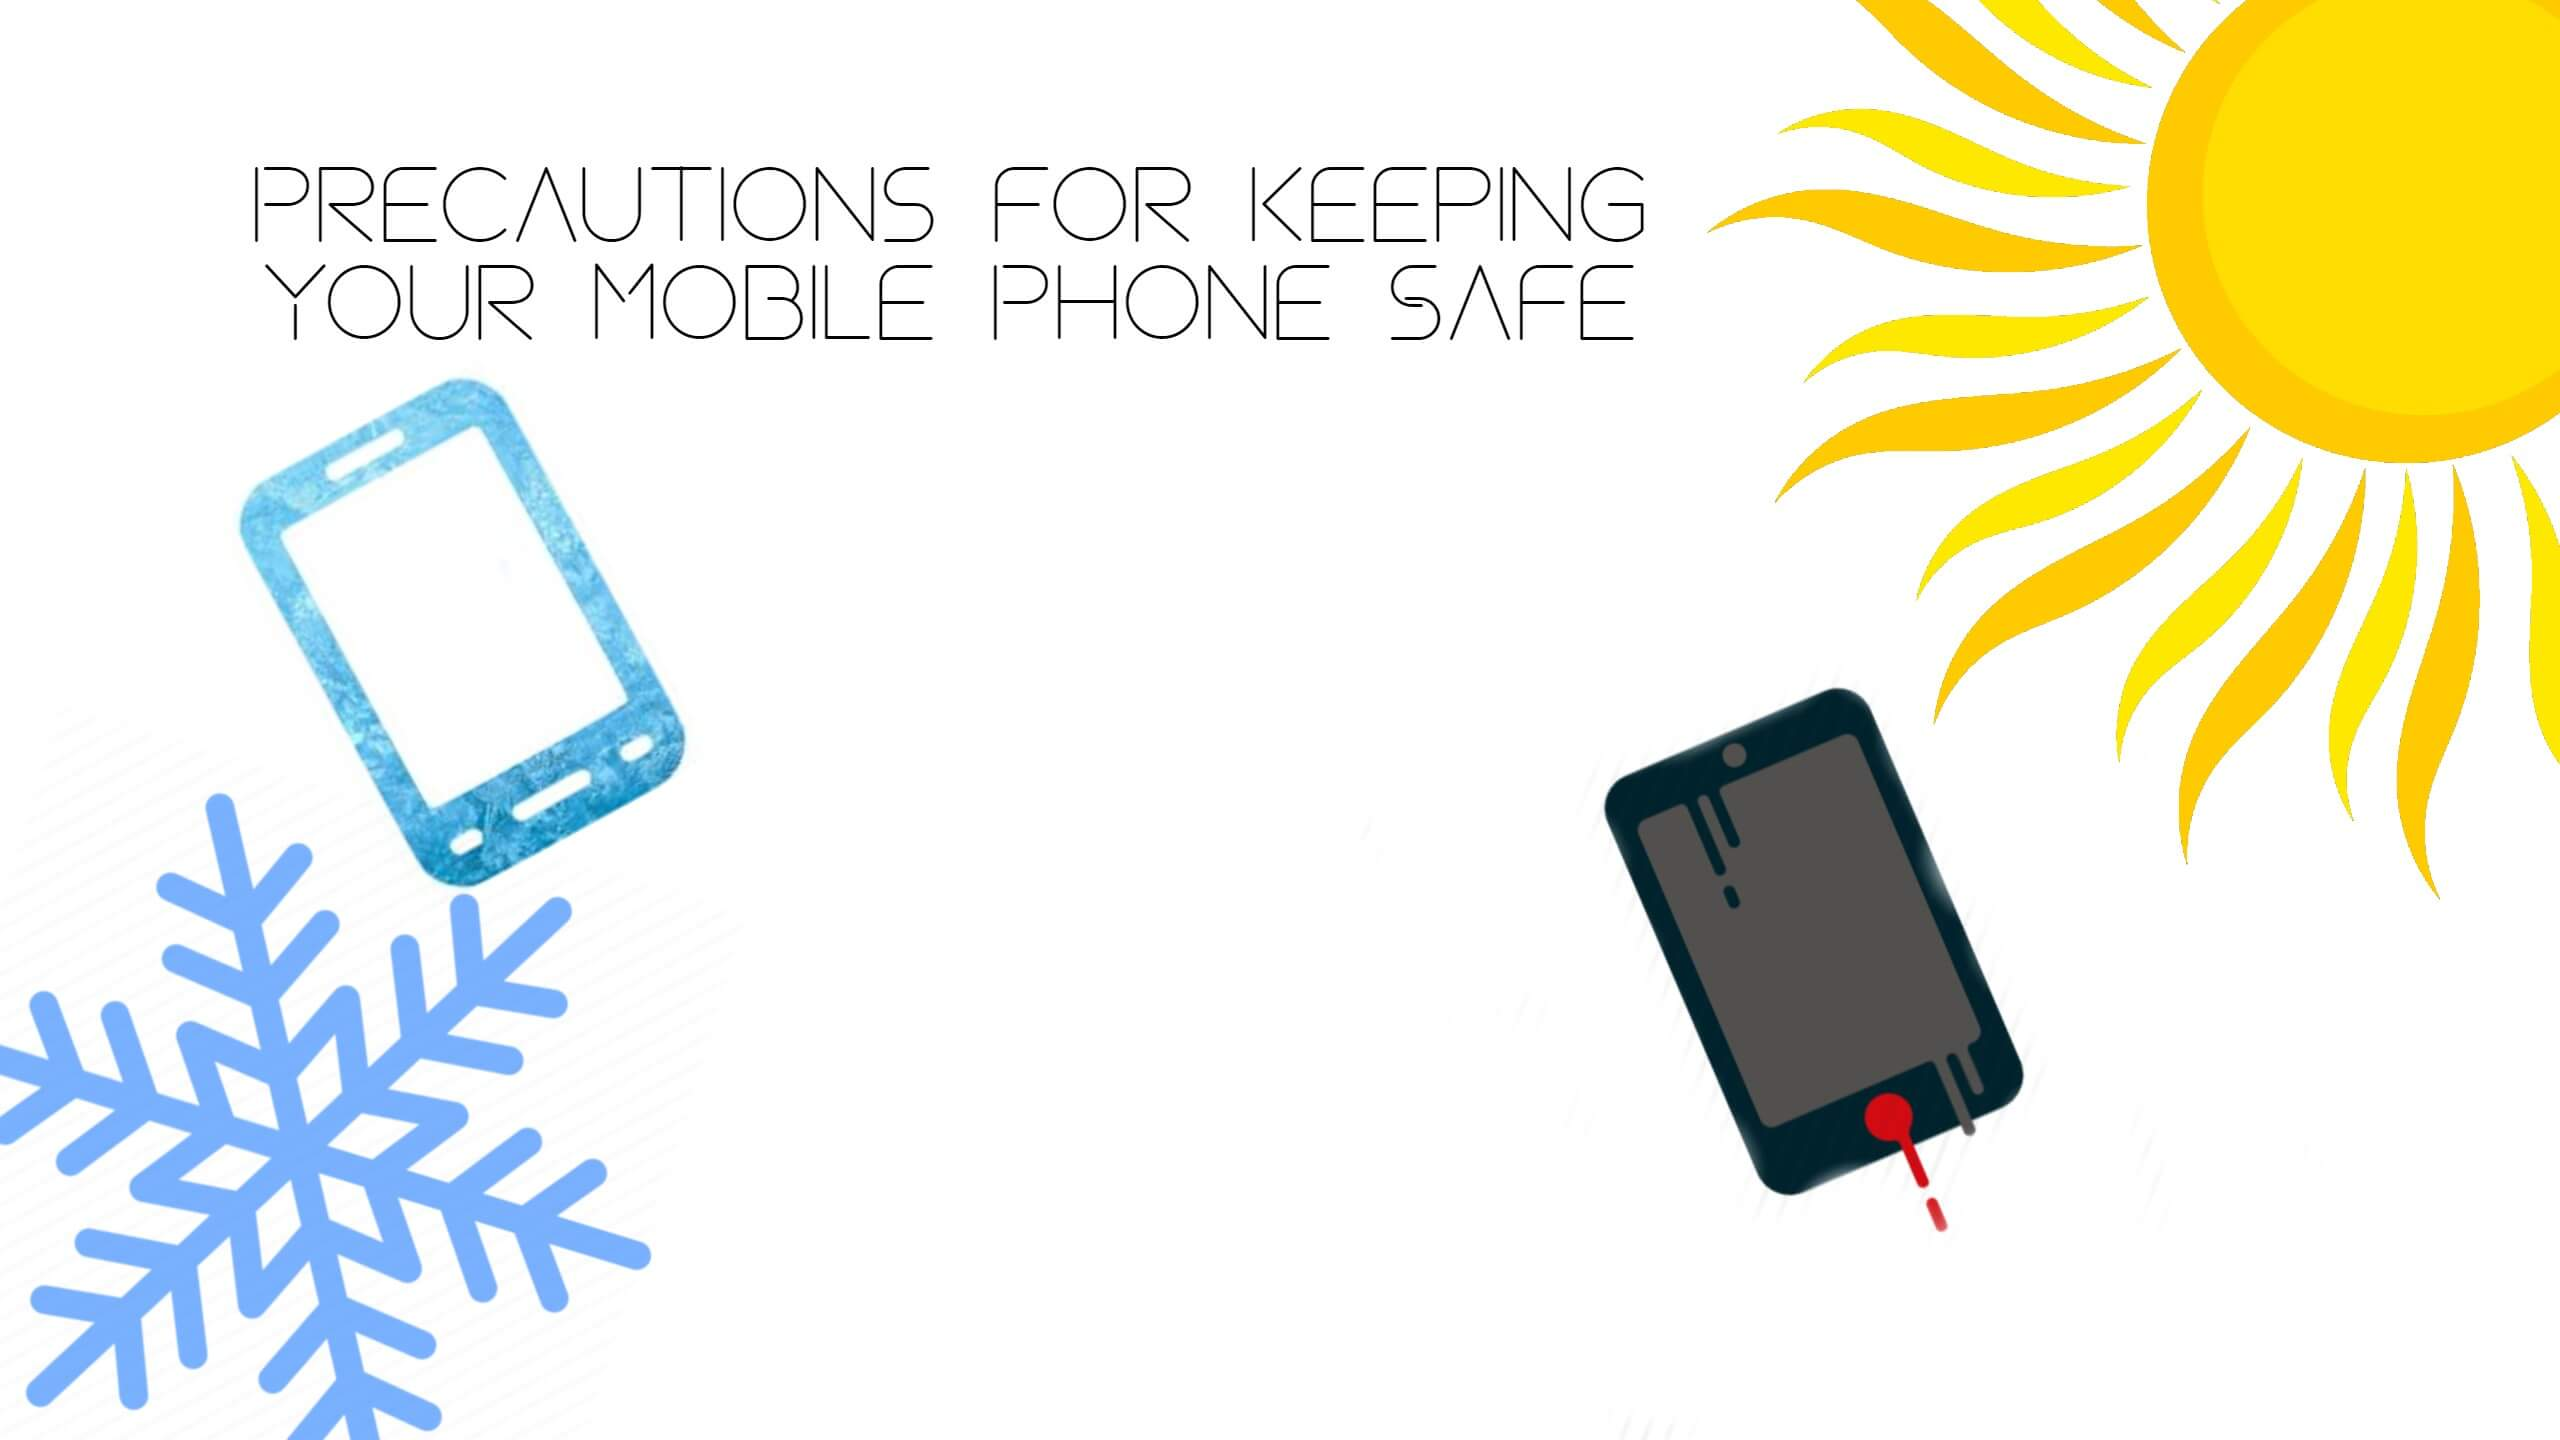 Precautions for Keeping Your Mobile Phone Safe This Cold Season